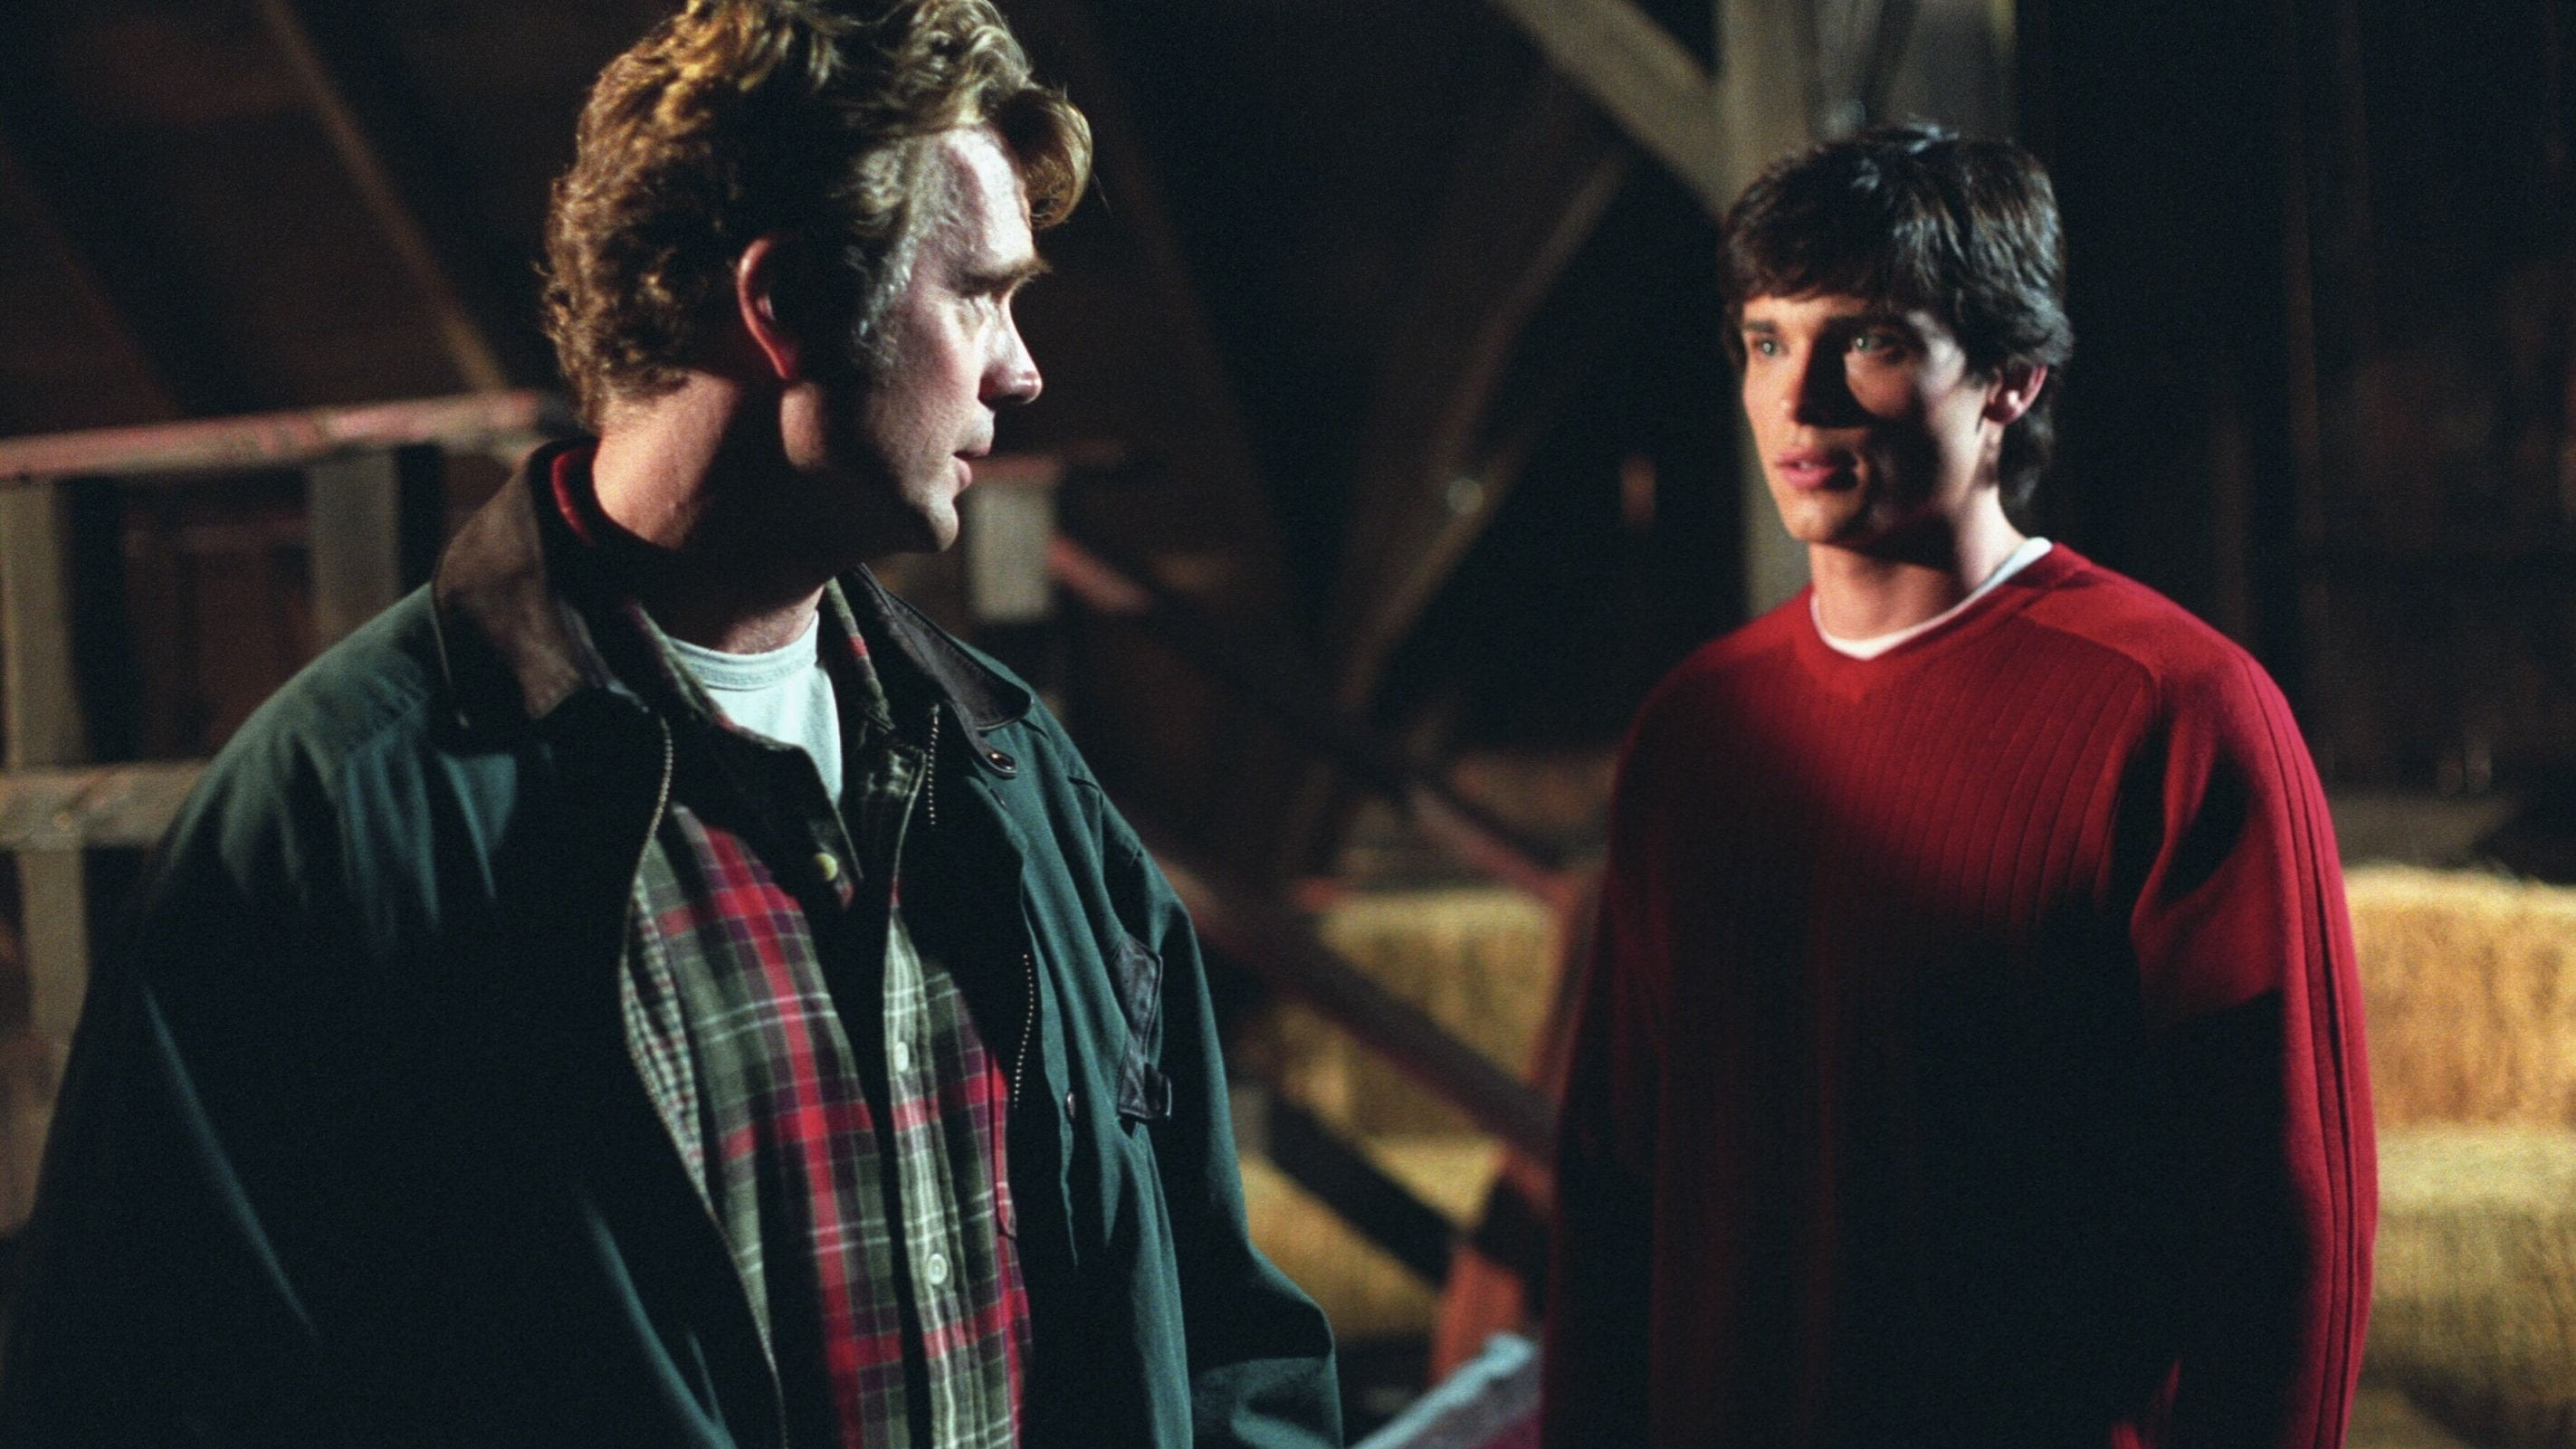 smallville season 10 episode 22 cucirca